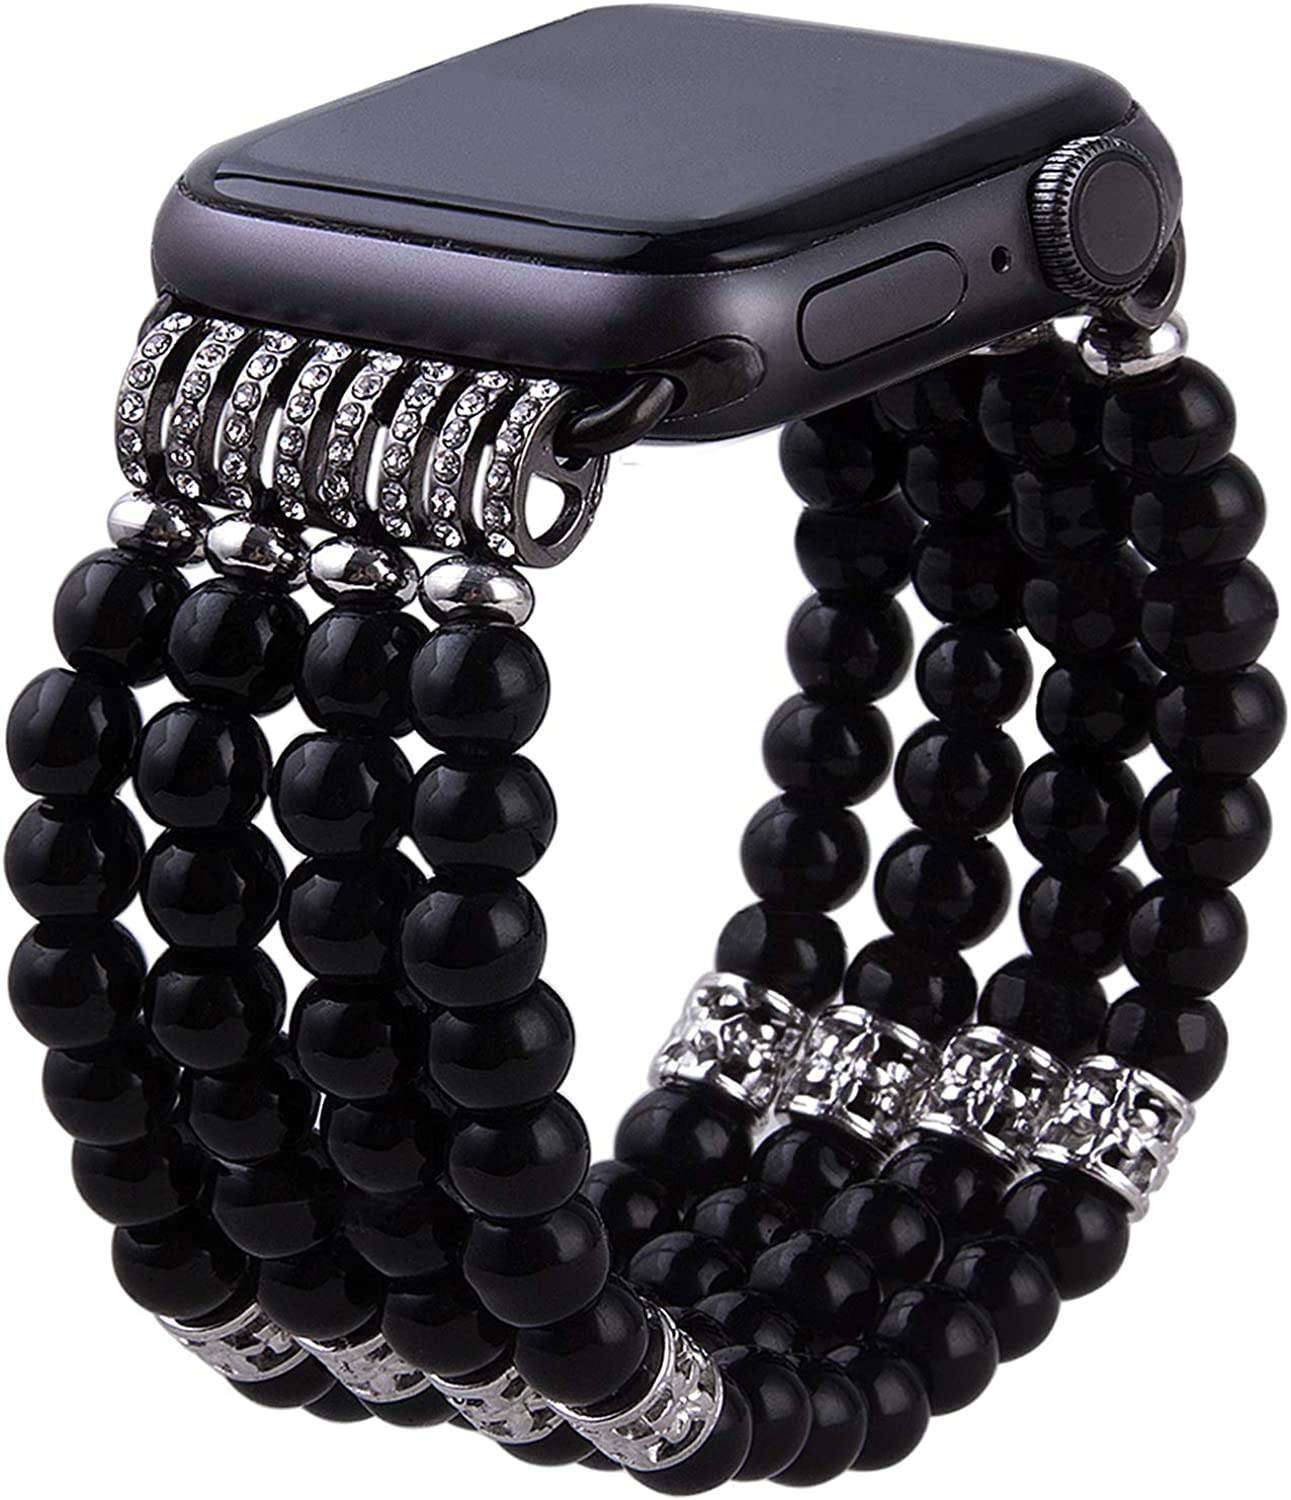 VIQIV for Handmade Beaded Compatible with Apple Watch Band 38mm 40mm 42mm 44mm Iwatch Series 6/5/4/3/2/1, Elastic Stretch Faux Pearl Bracelet Replacement Wristband Strap for Women Girls